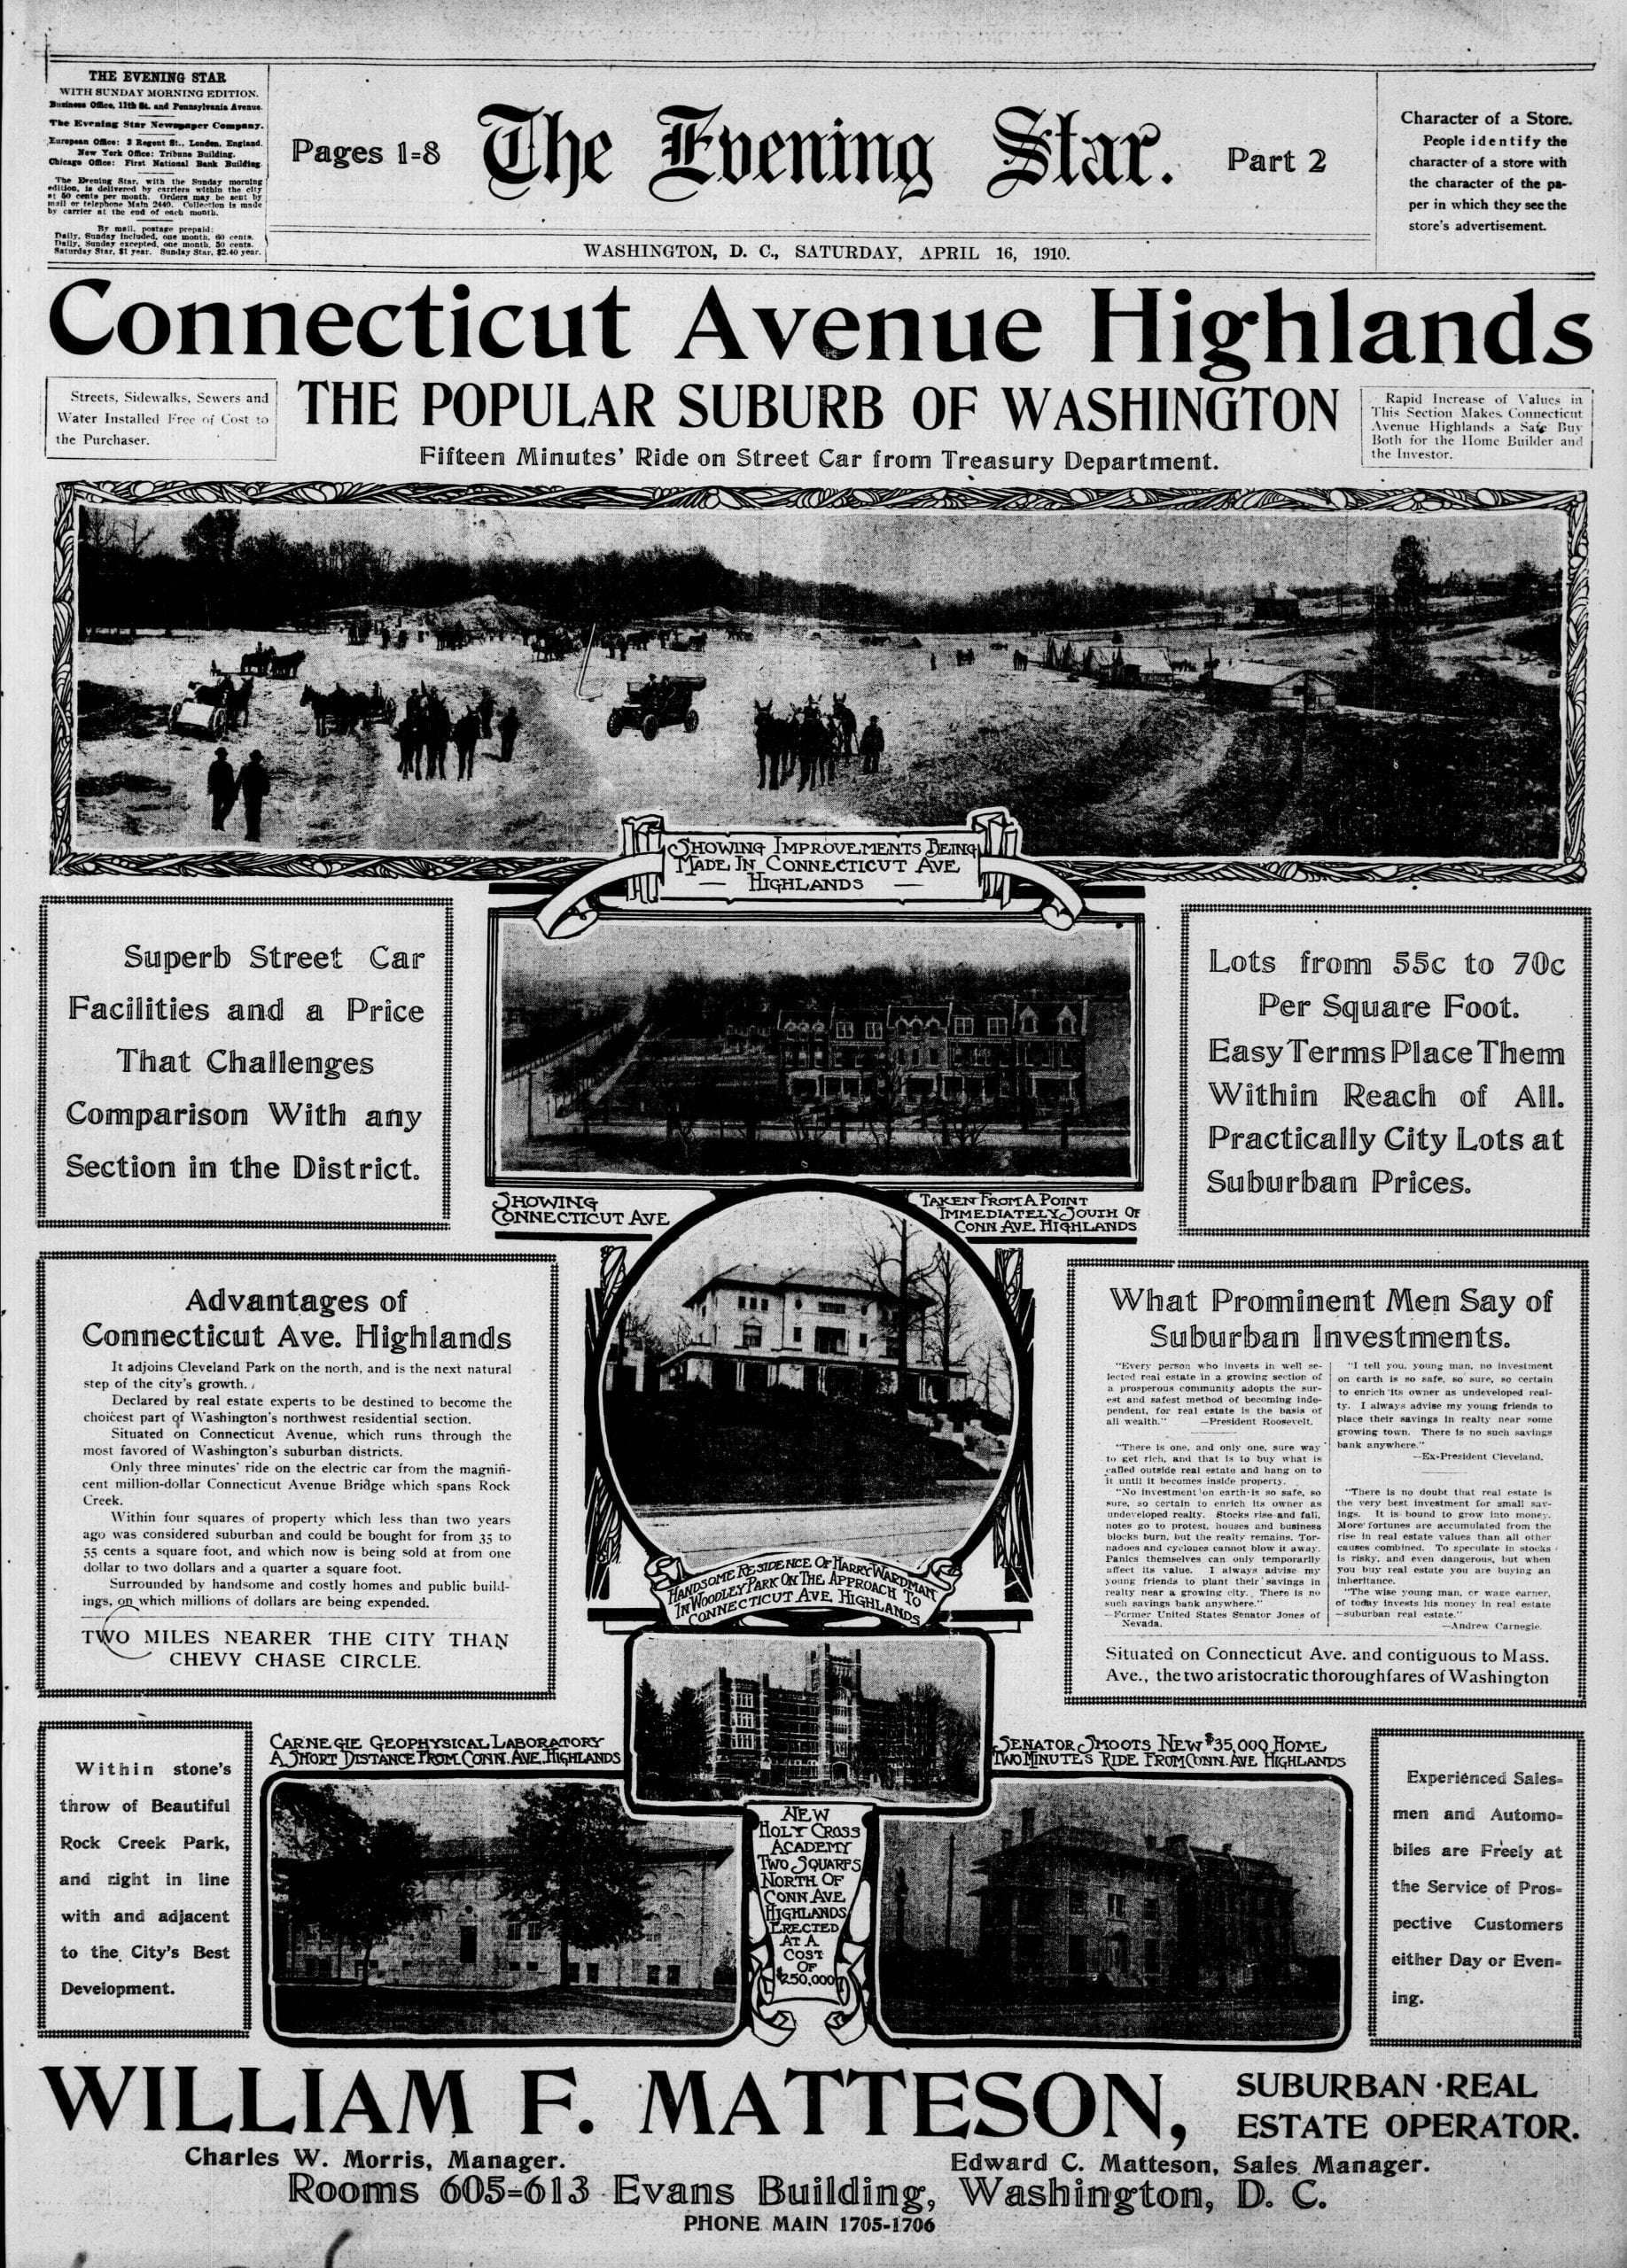 1910 Ad for Connecticut Ave. Highlands (Cleveland Park)